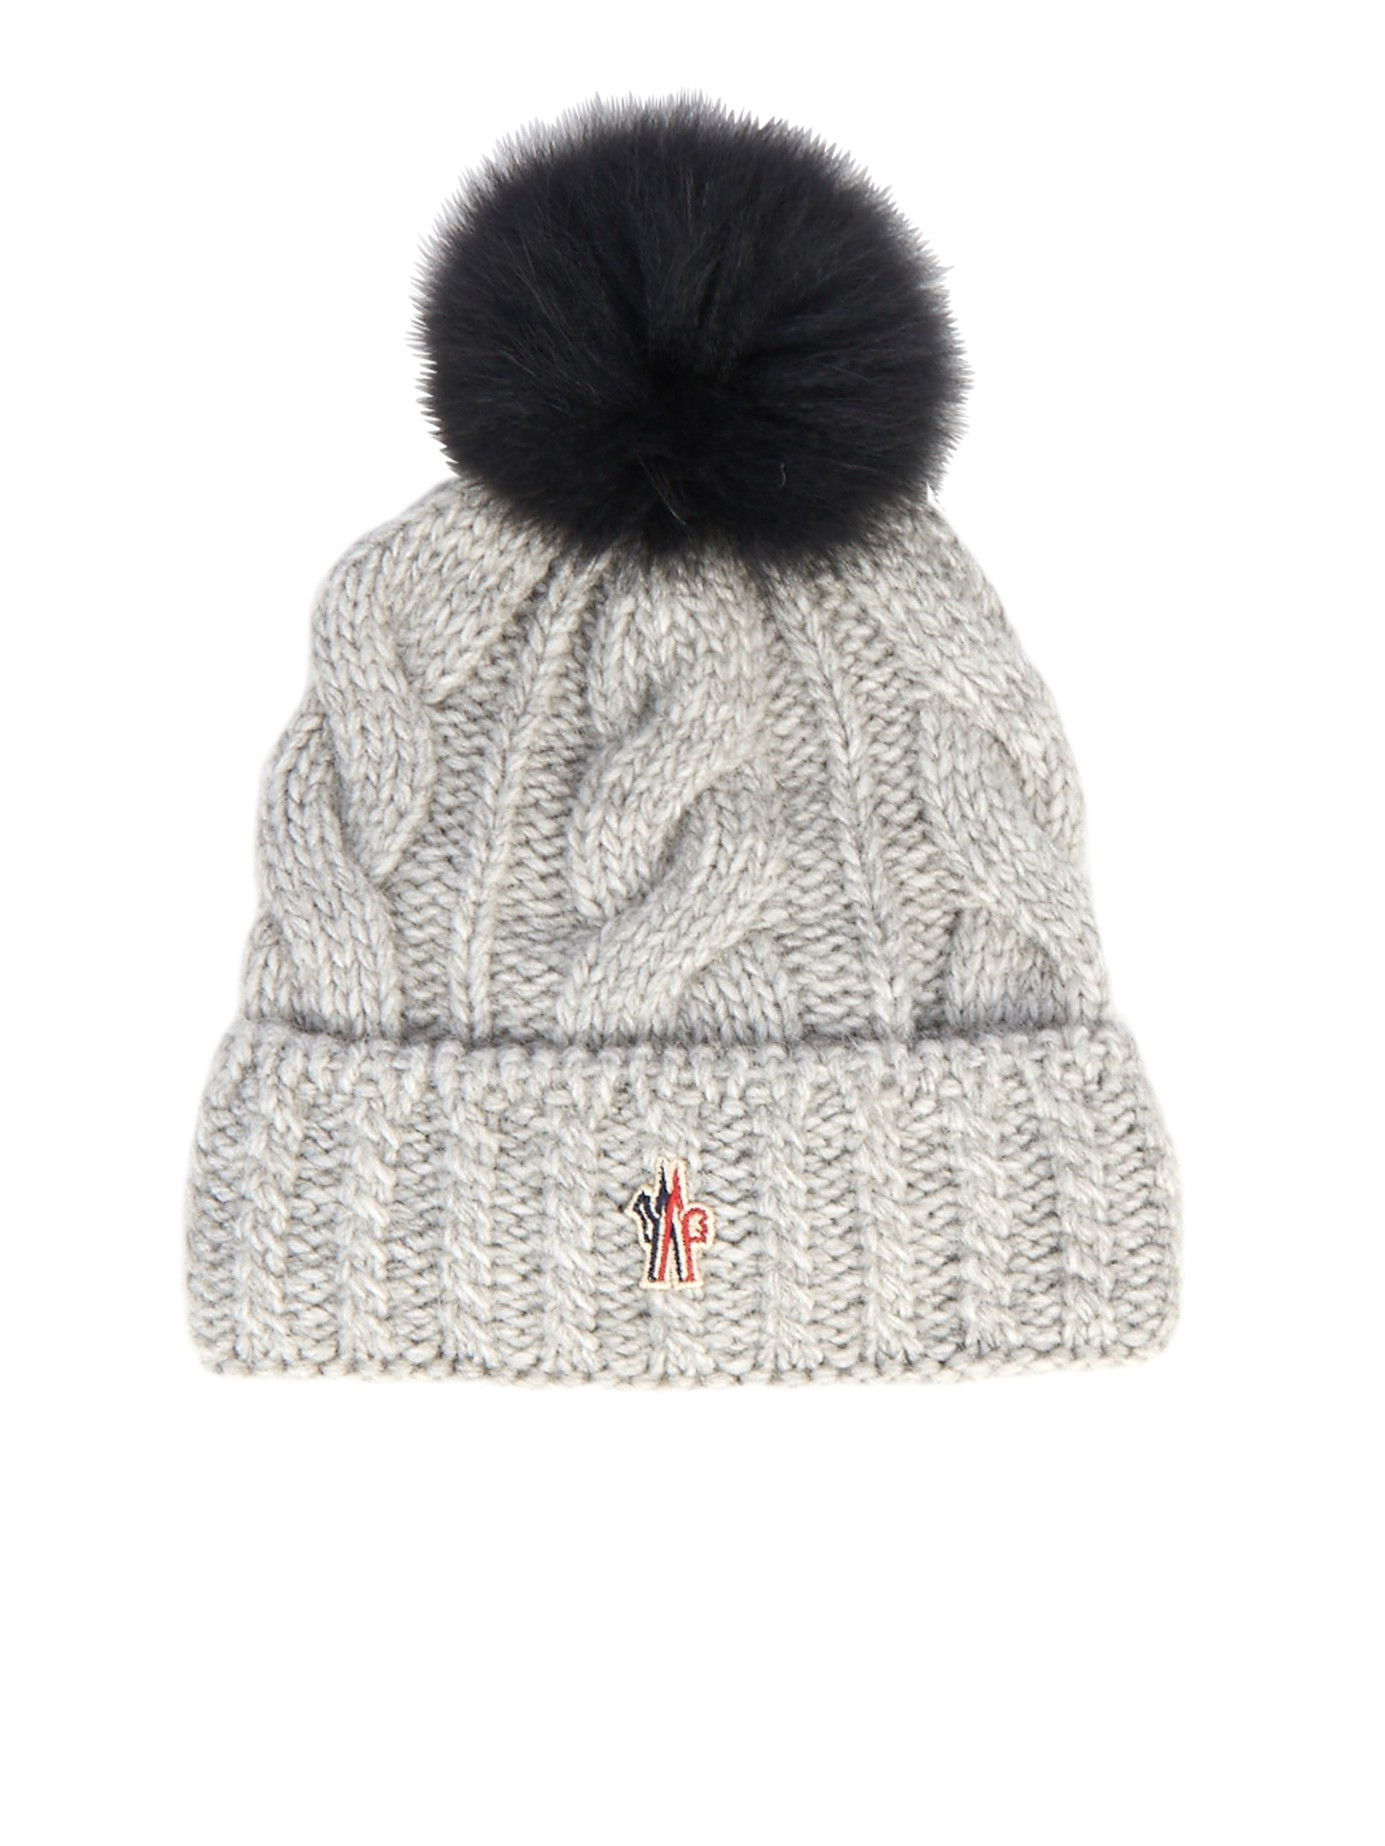 719232495cf Lyst - Moncler Grenoble Cable Knit Pompom Beanie in Gray